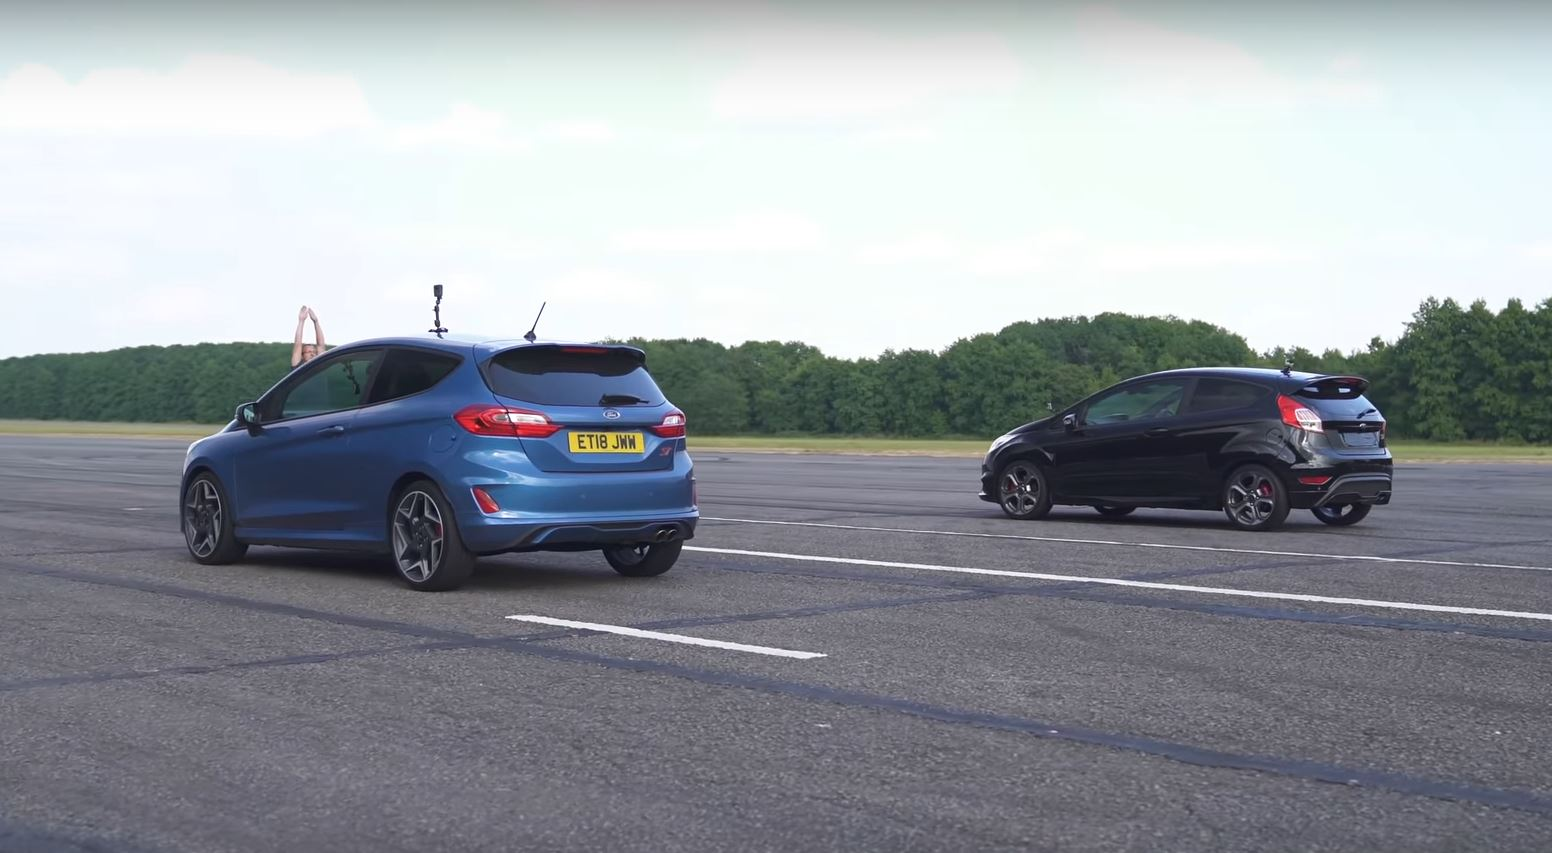 2019 Ford Fiesta St With 1 5l Turbo Is Faster Than Old 1 6l Model